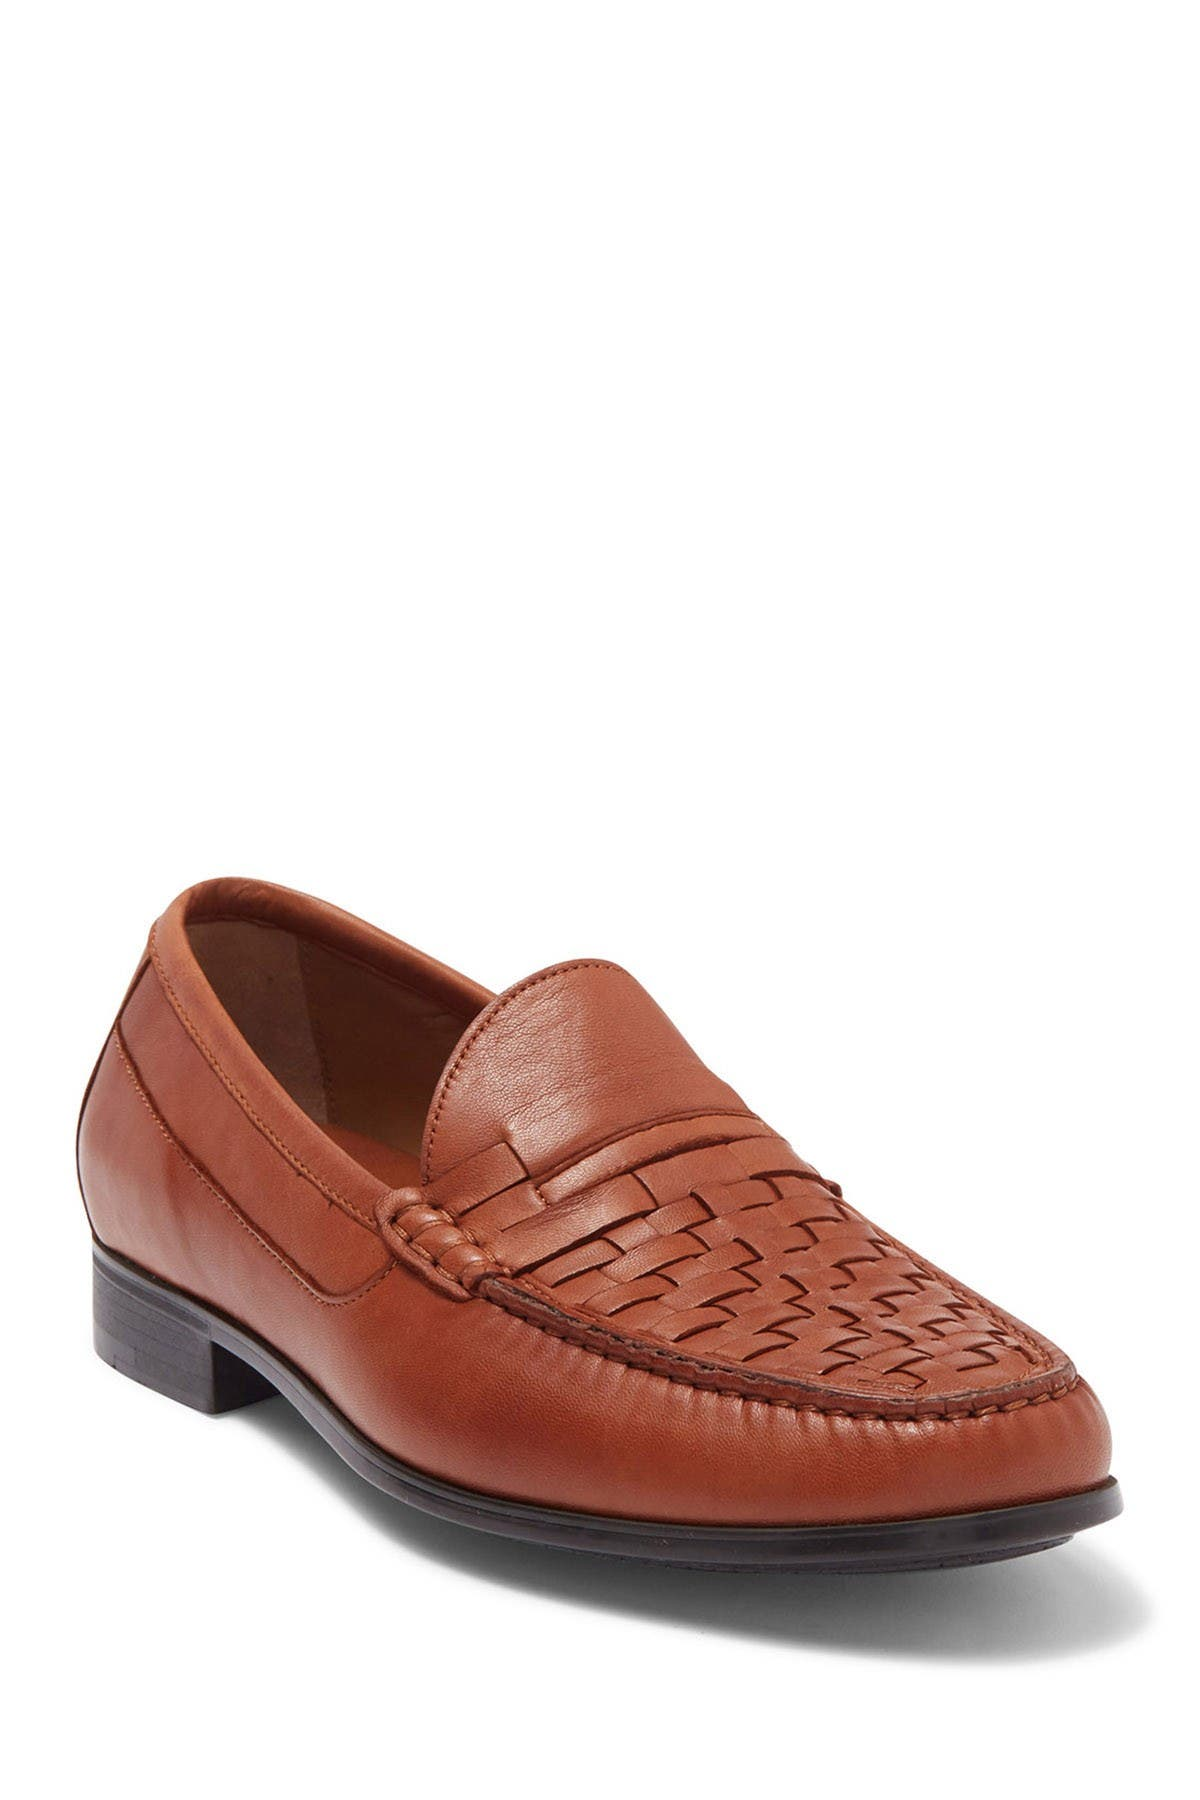 Image of Johnston & Murphy Cresswell Woven Venetian Moc Toe Loafer